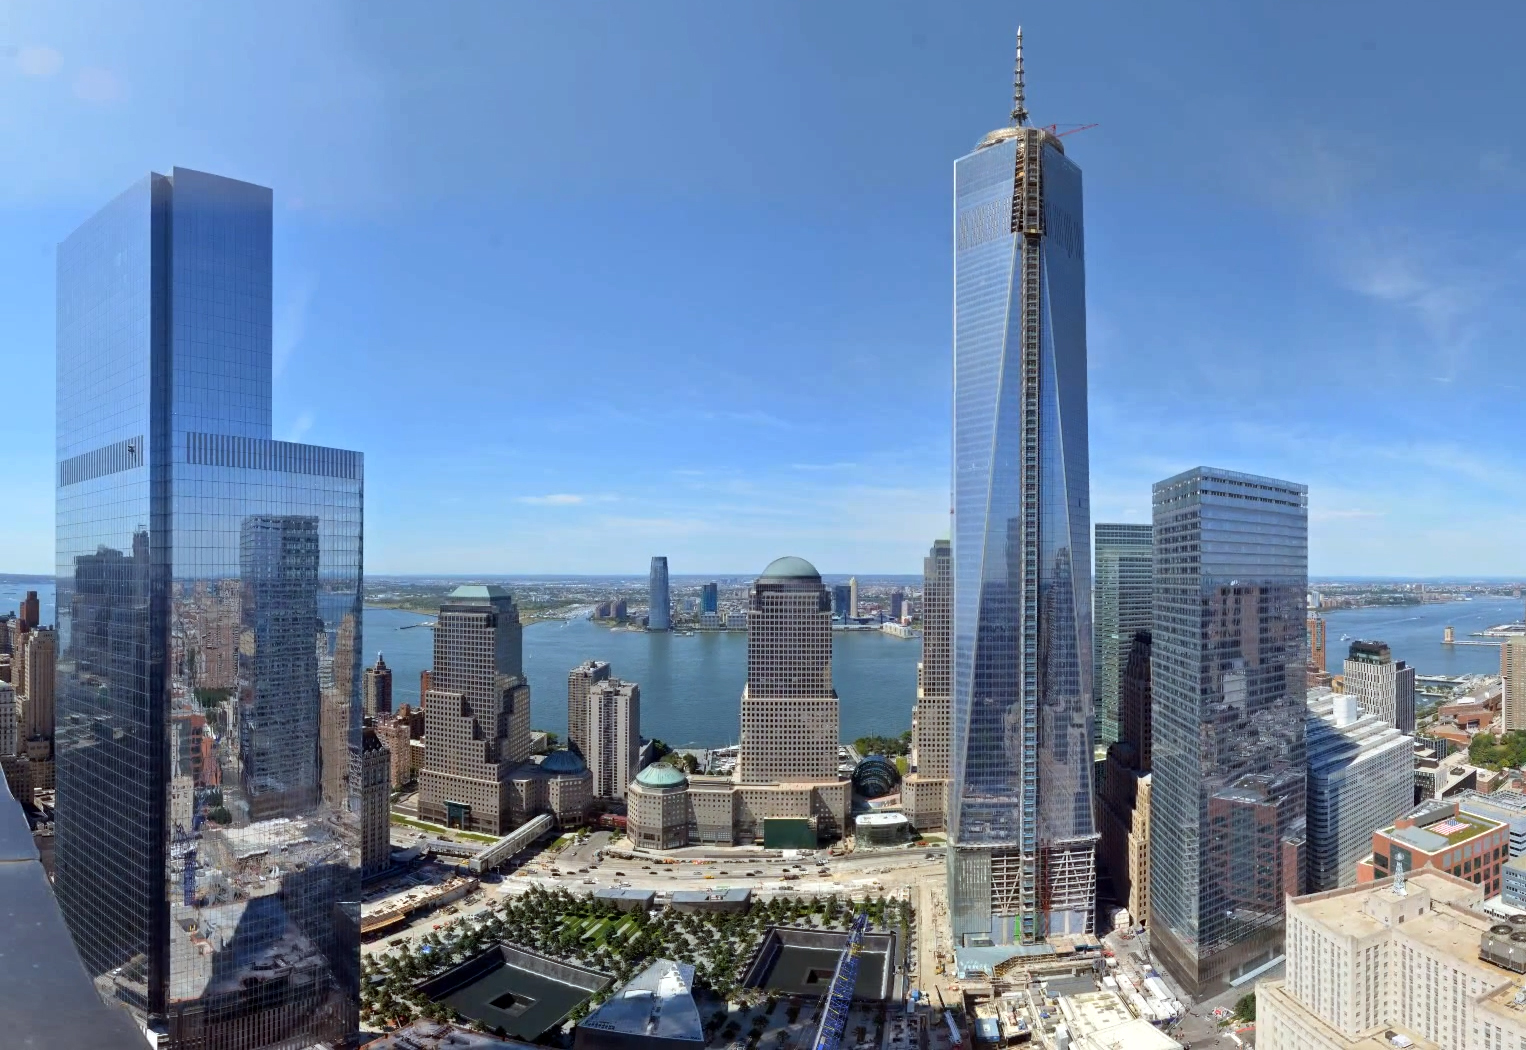 They Say Theyre Building Worlds Tallest >> World Trade Center Will Be Tallest U S Building Experts Say Cbs News